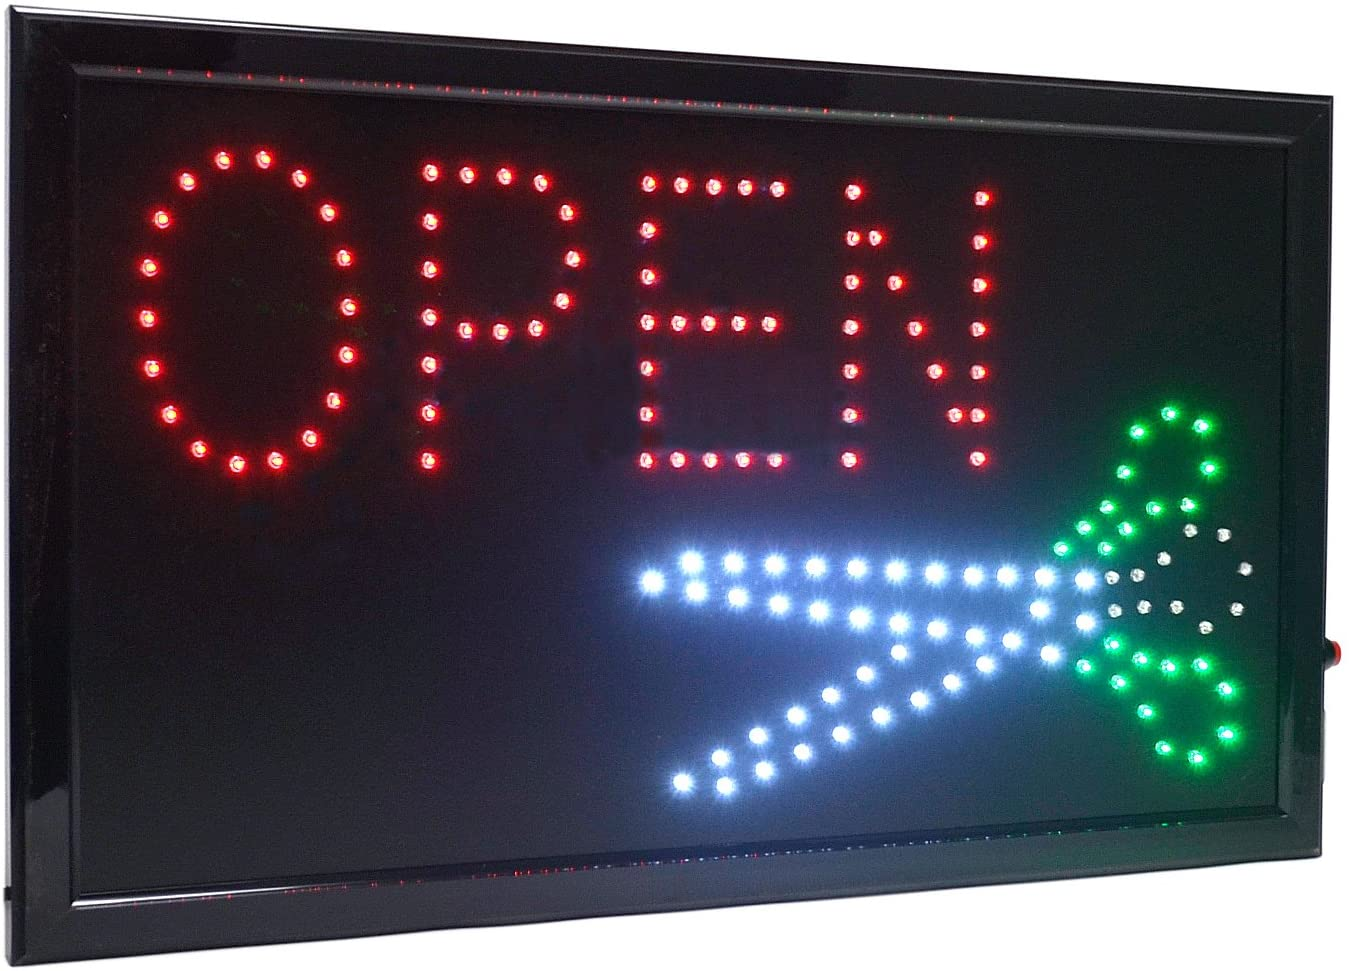 21.5x13 Large High Visible LED Light Business Open Sign with Chain On/Off Button Motion Control (Barber)